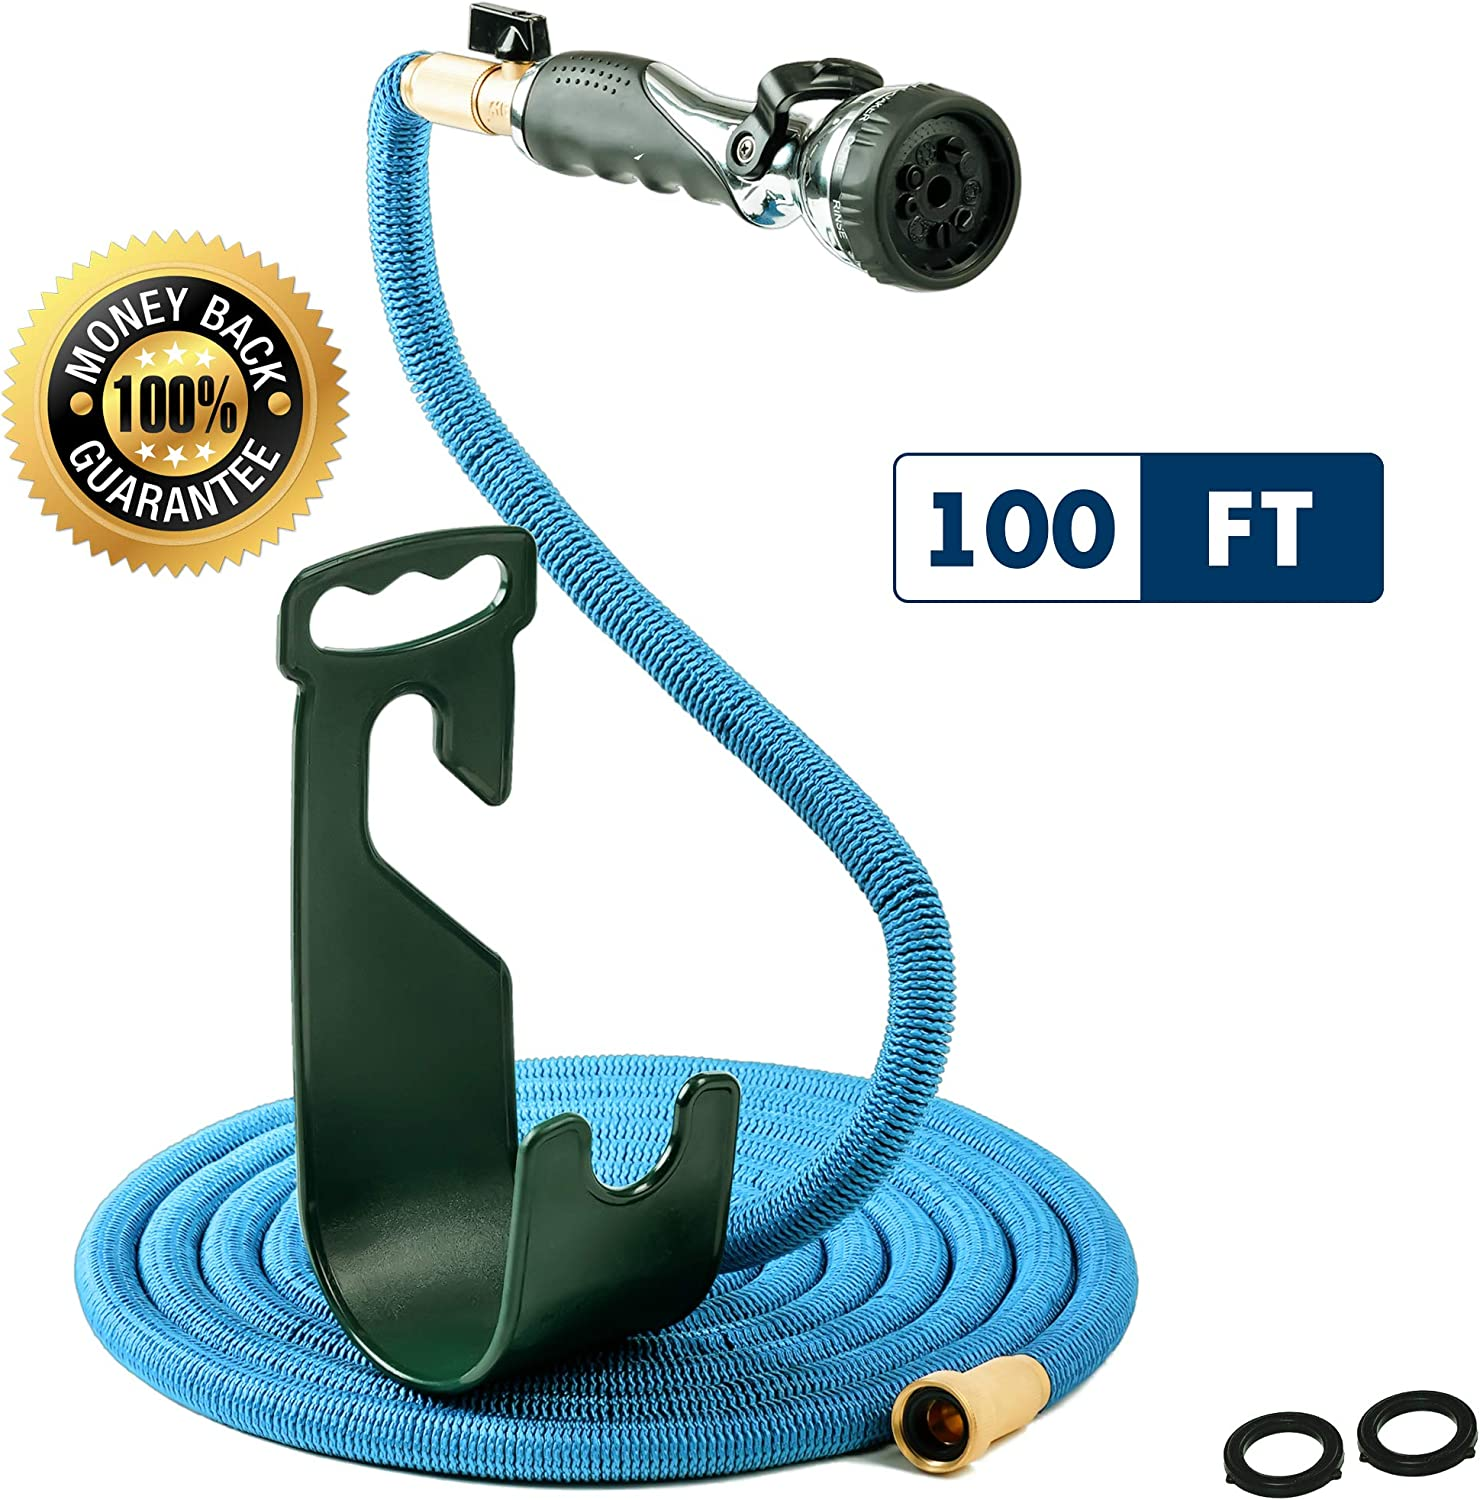 Vela Water Hose - Expandable Garden Hose - Hose Holder - High Pressure Washer Spray Nozzle with 9 Settings - Best As Seen on TV Heavy Duty Kink Free Flex Hose for Car Washing - Watering Hose